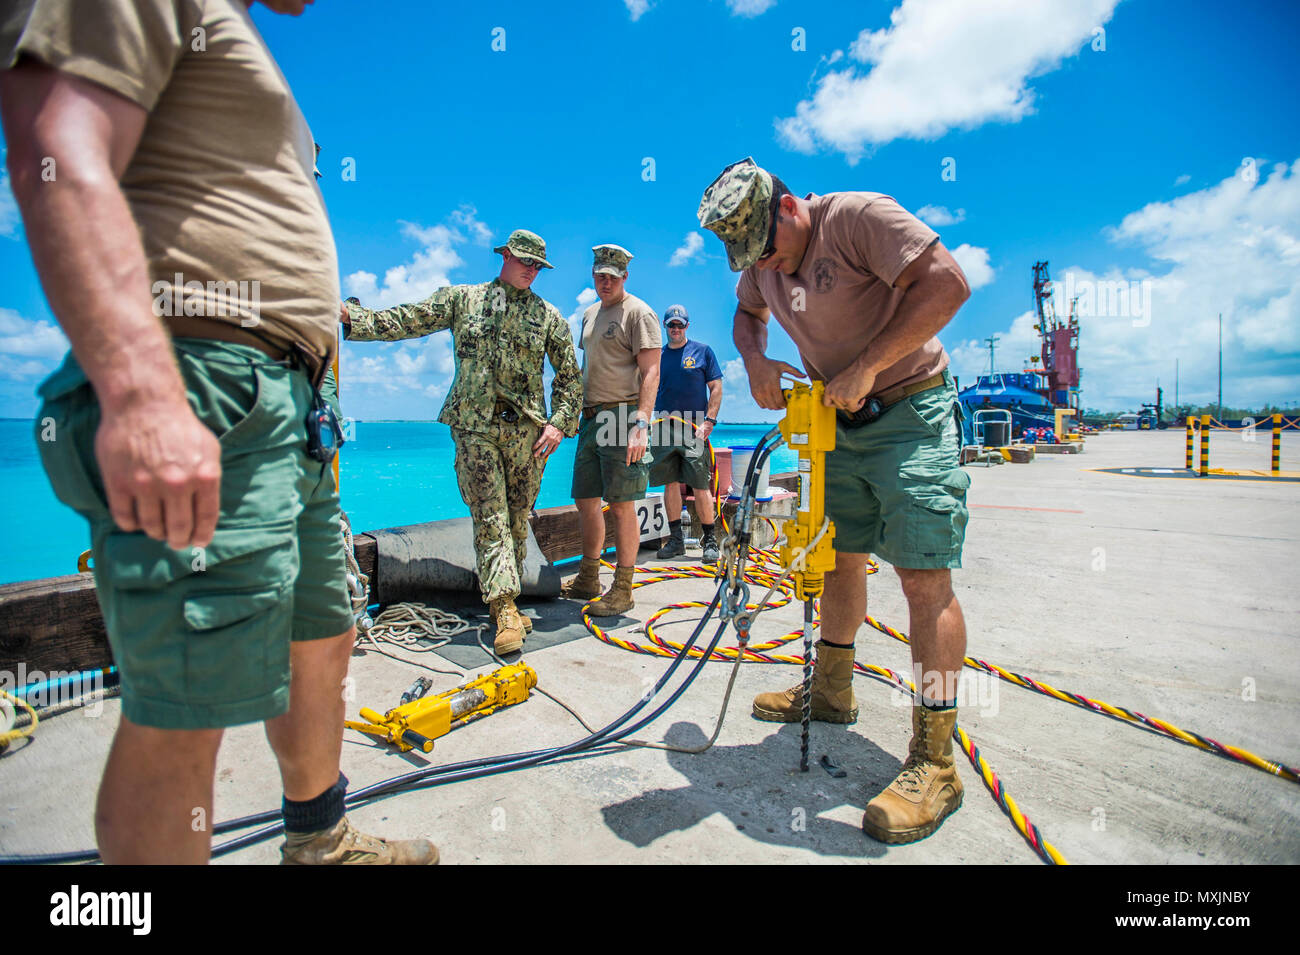 Chief Petty Officer Dan Luberto, right, assigned to Underwater Construction Team (UCT) 2's Construction Dive Detachment Bravo (CDDB), tests a hydraulic hammer drill in Diego Garcia, British Indian Ocean Territory, Nov. 7, 2016.  CDDB is performing precision underwater demolition and light salvage to remove obstructions from Diego Garcia's deep draft wharf. CDDB is on the third stop of their deployment, where they are conducting inspection, maintenance, and repair of various underwater and waterfront facilities while under Commander, Task Force (CTF) 75, the primary expeditionary task force res Stock Photo